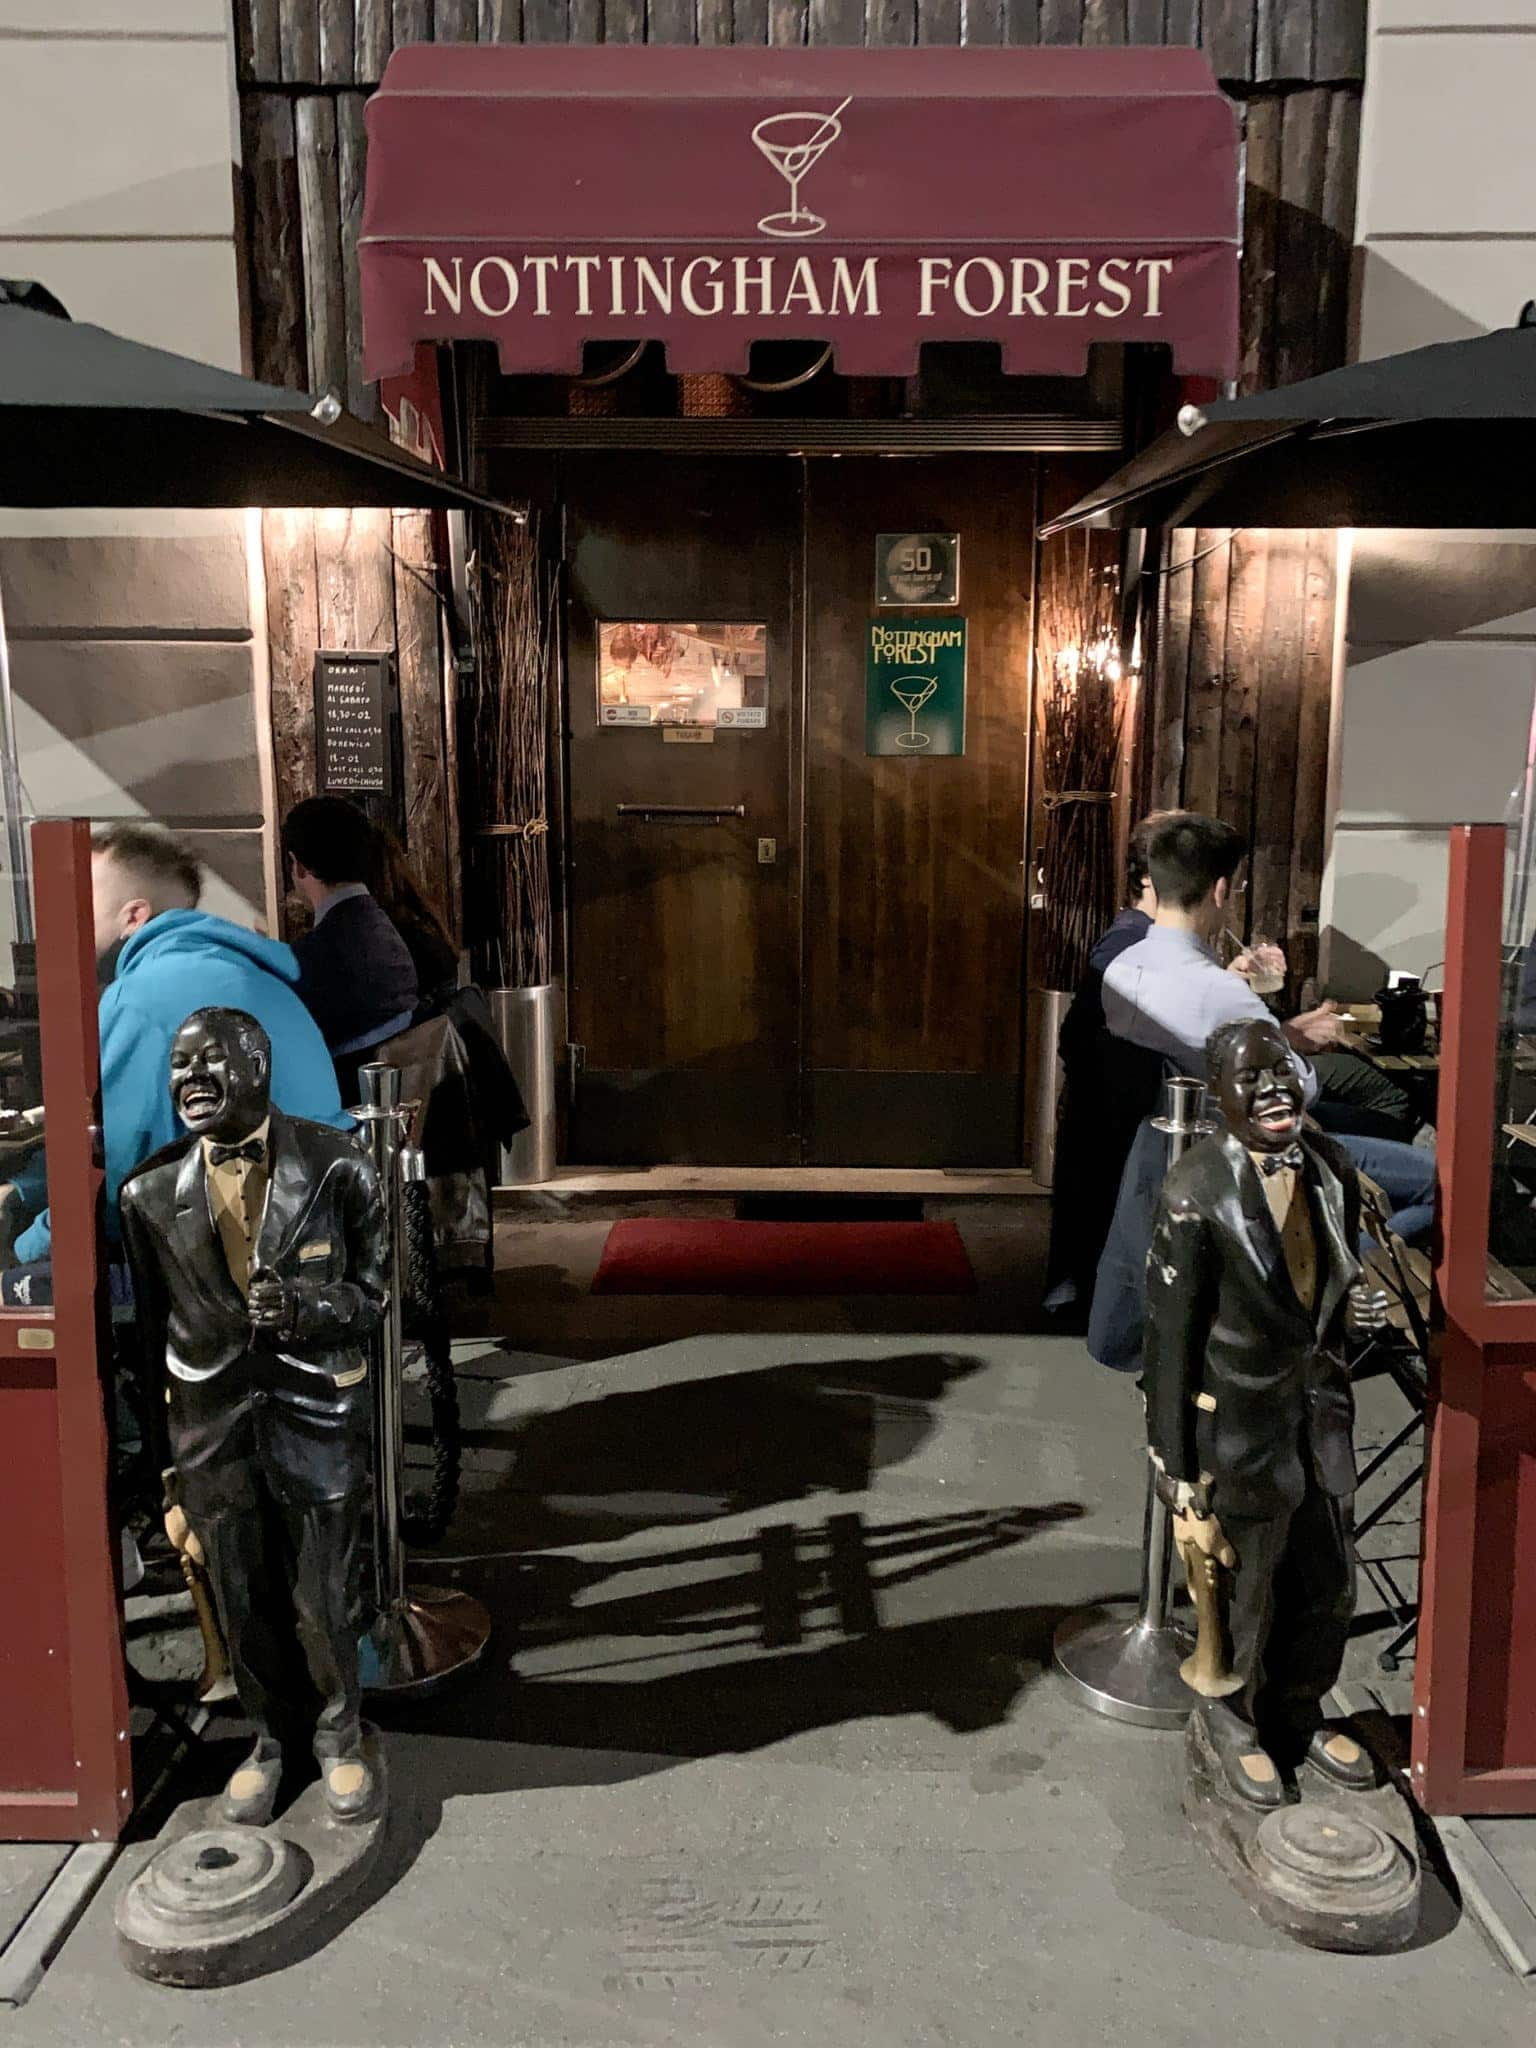 Entrance to Nottingham Forest